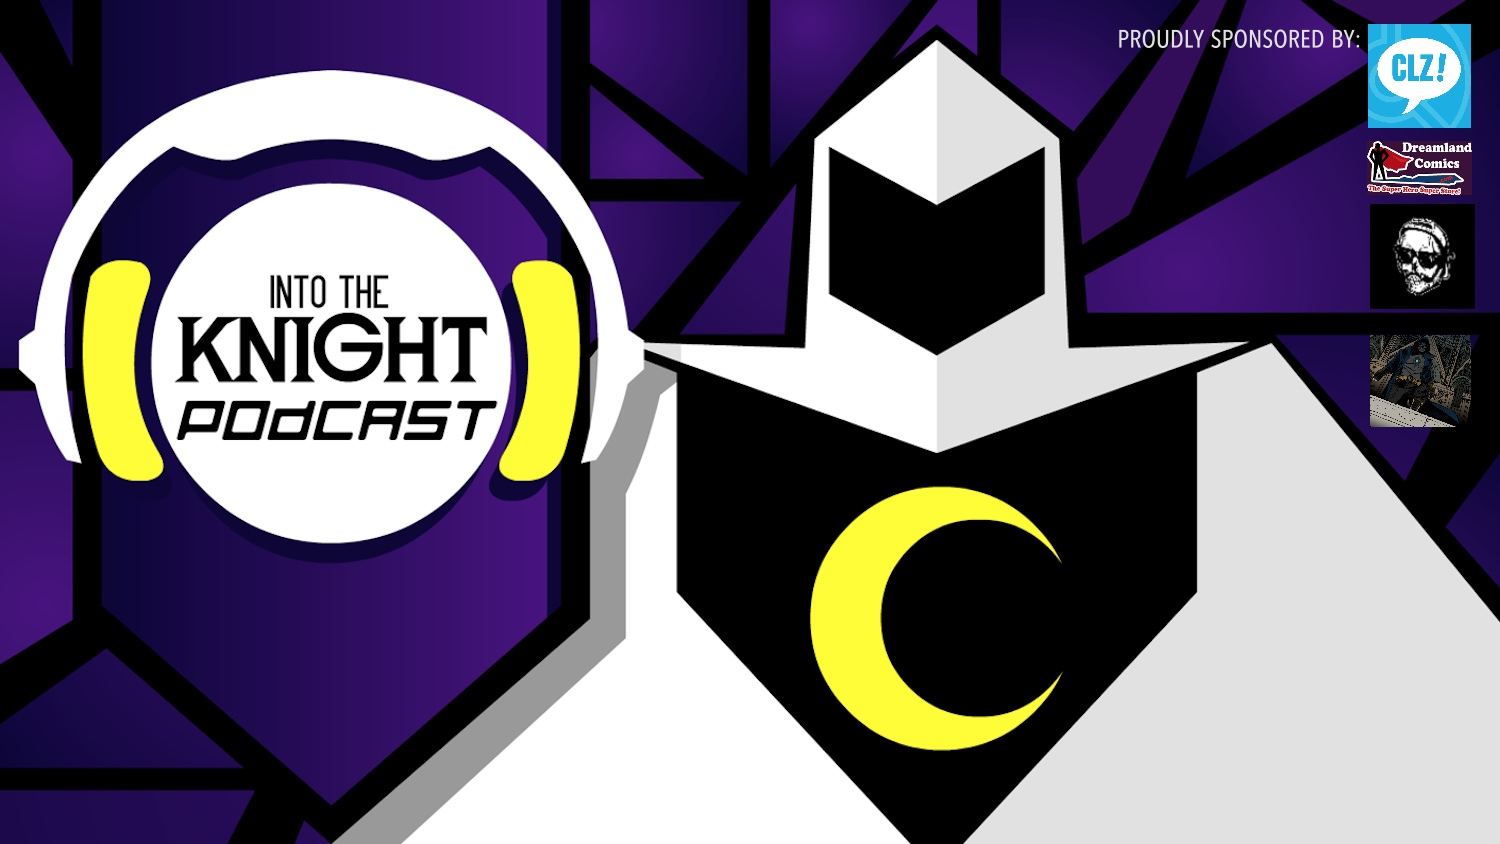 Into the Knight - The Moon Knight Podcast Site